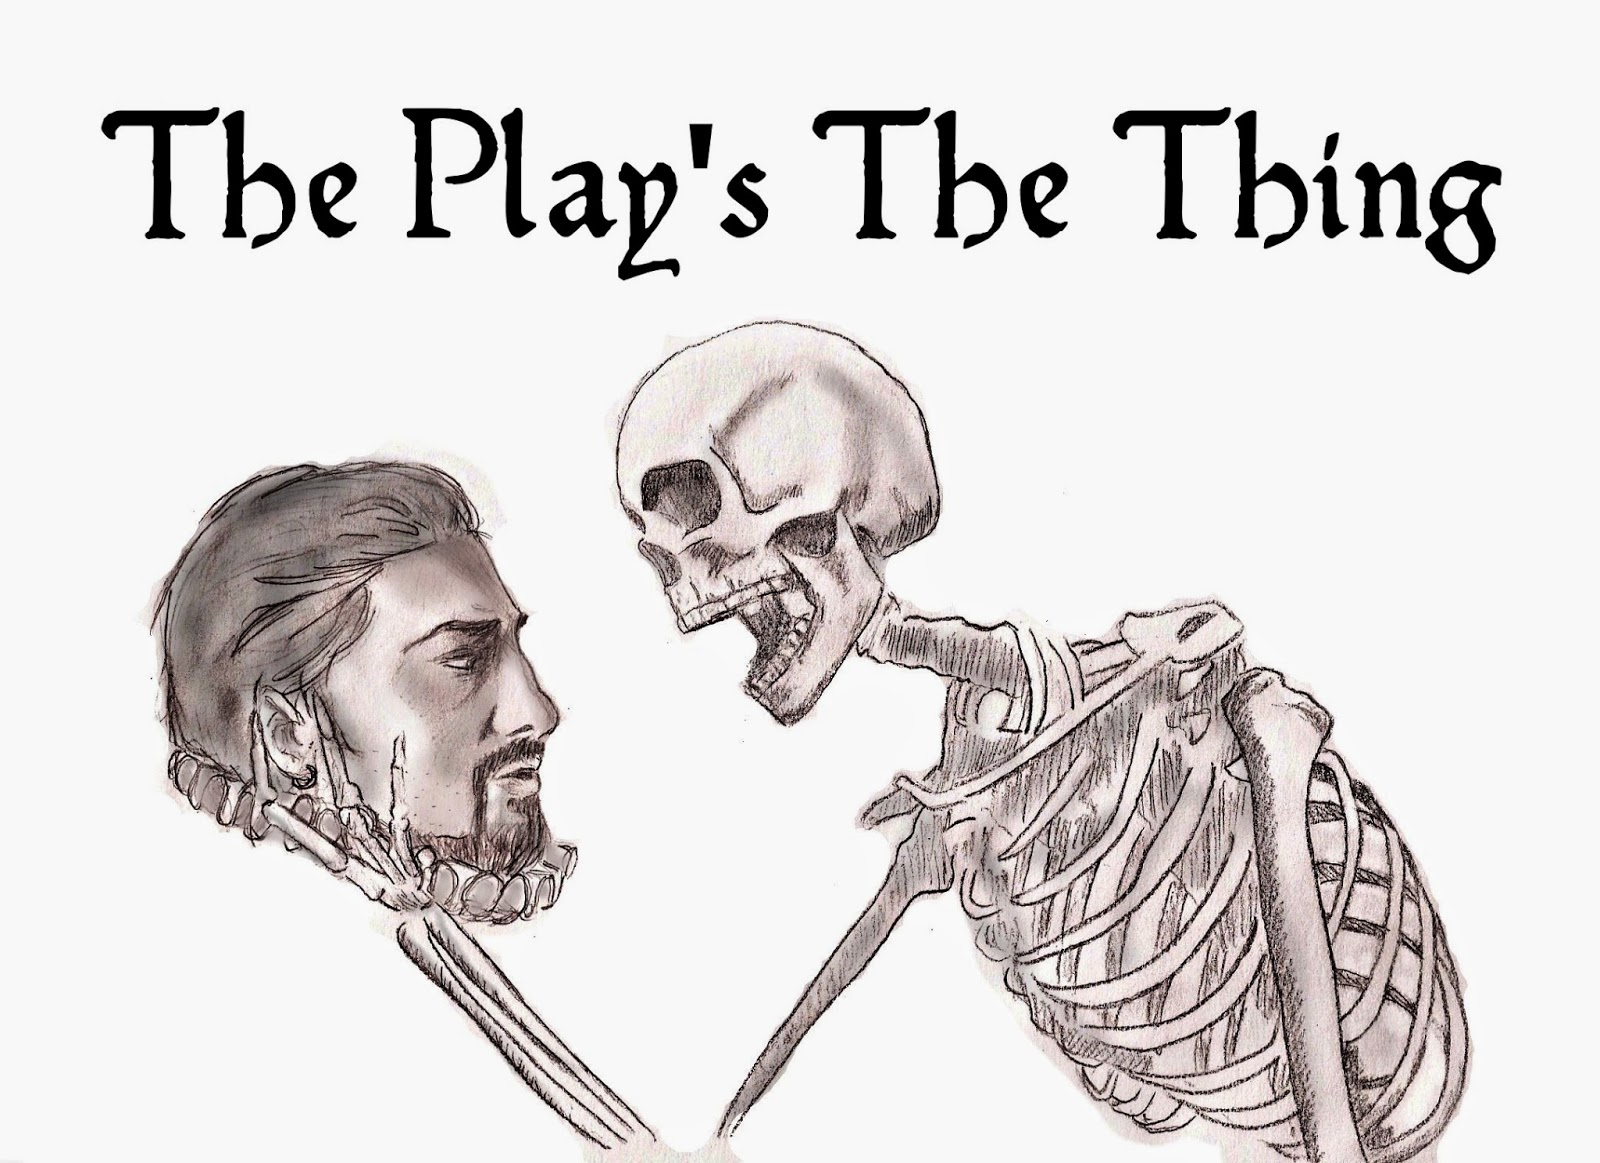 https://www.kickstarter.com/projects/marktruman/the-plays-the-thing-a-shakespearean-rpg